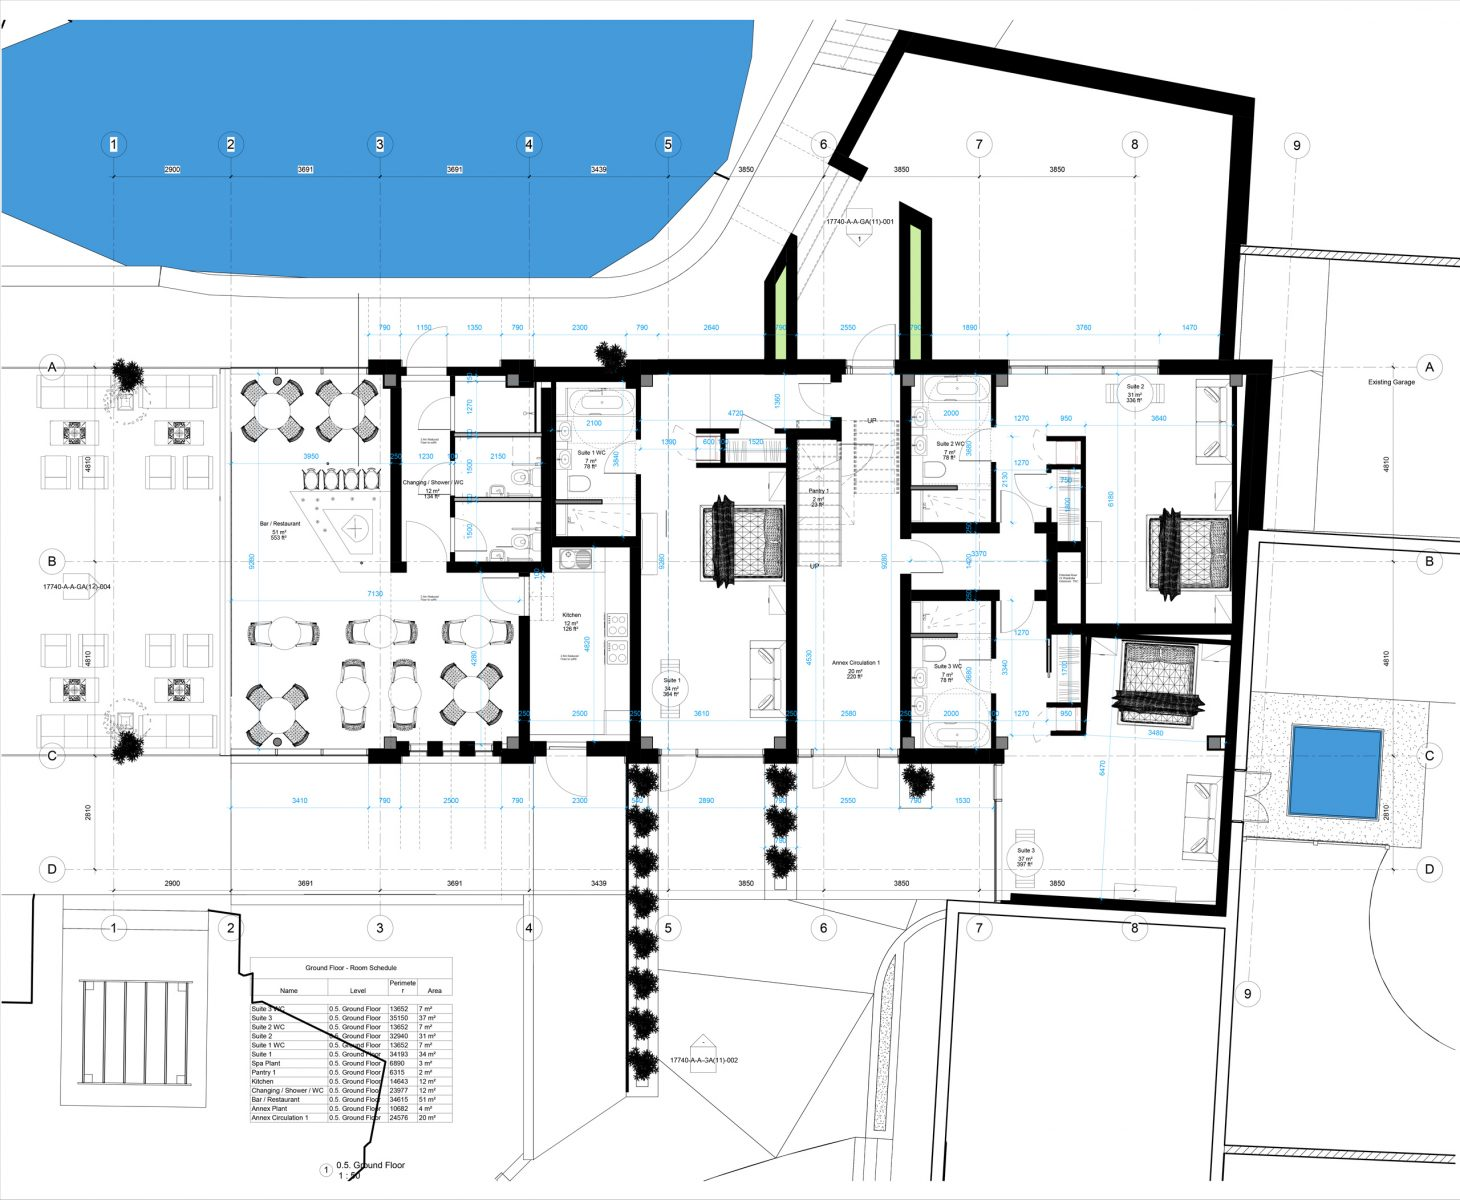 jersey hotel annex extension hospitality architecture jersey architects01